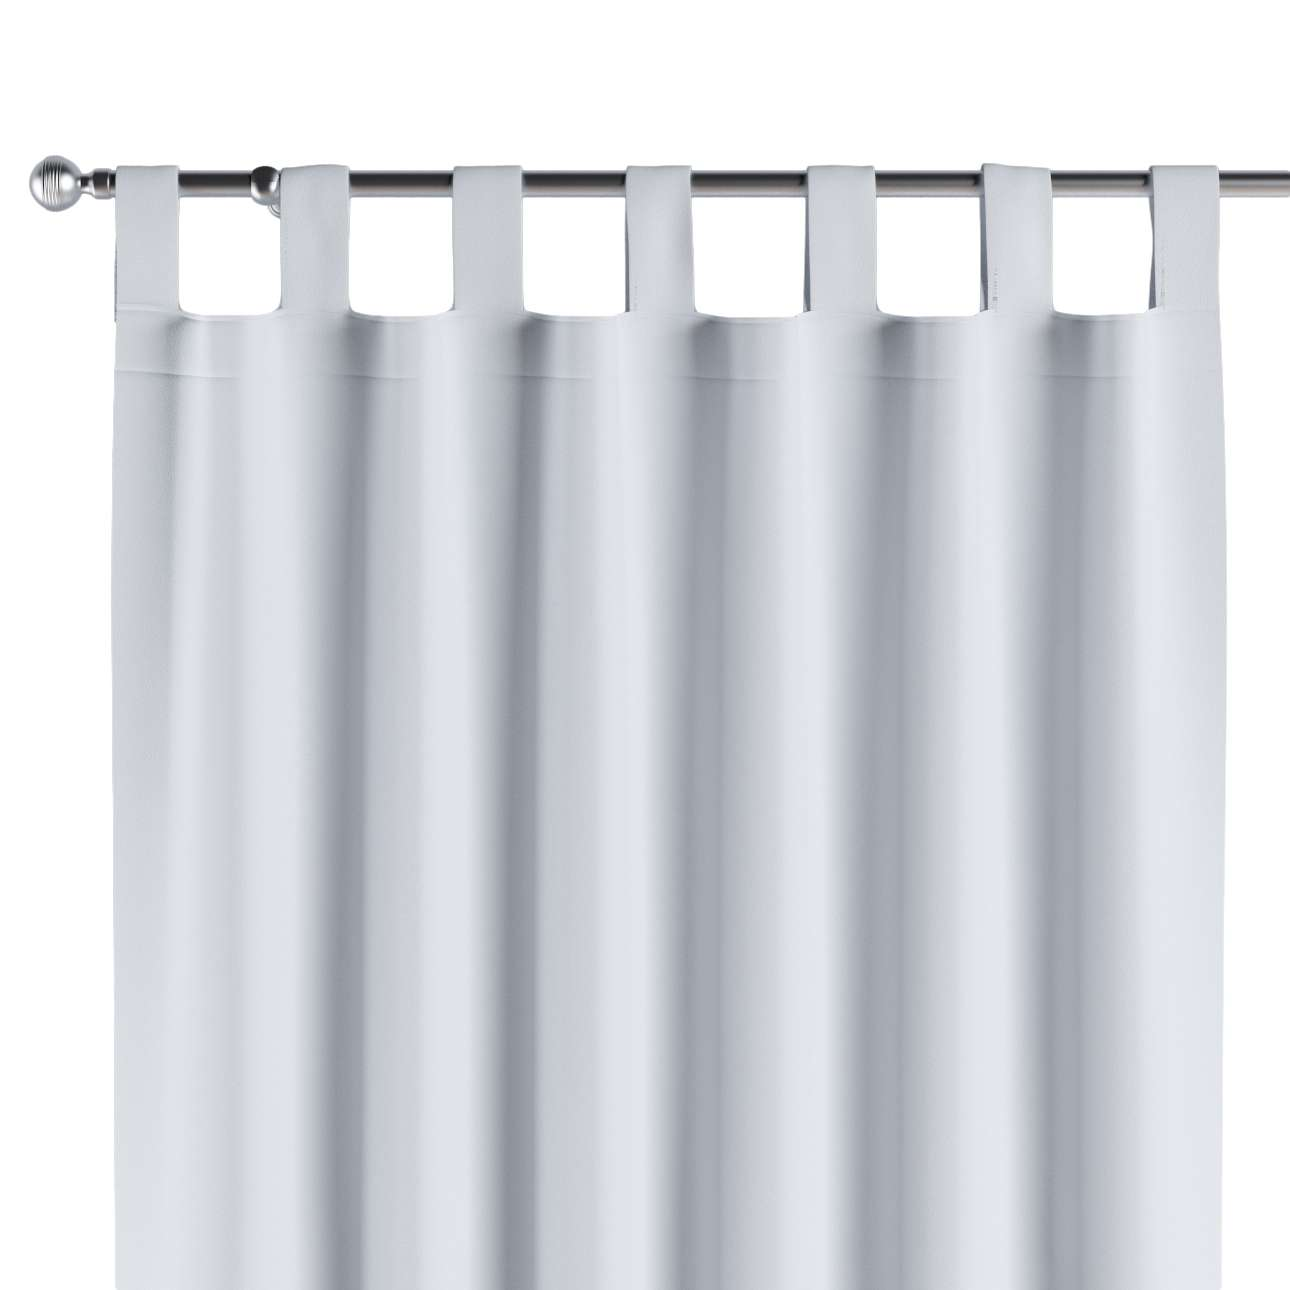 Blackout Tab Top Curtains Off White Pale Greyish 140 X